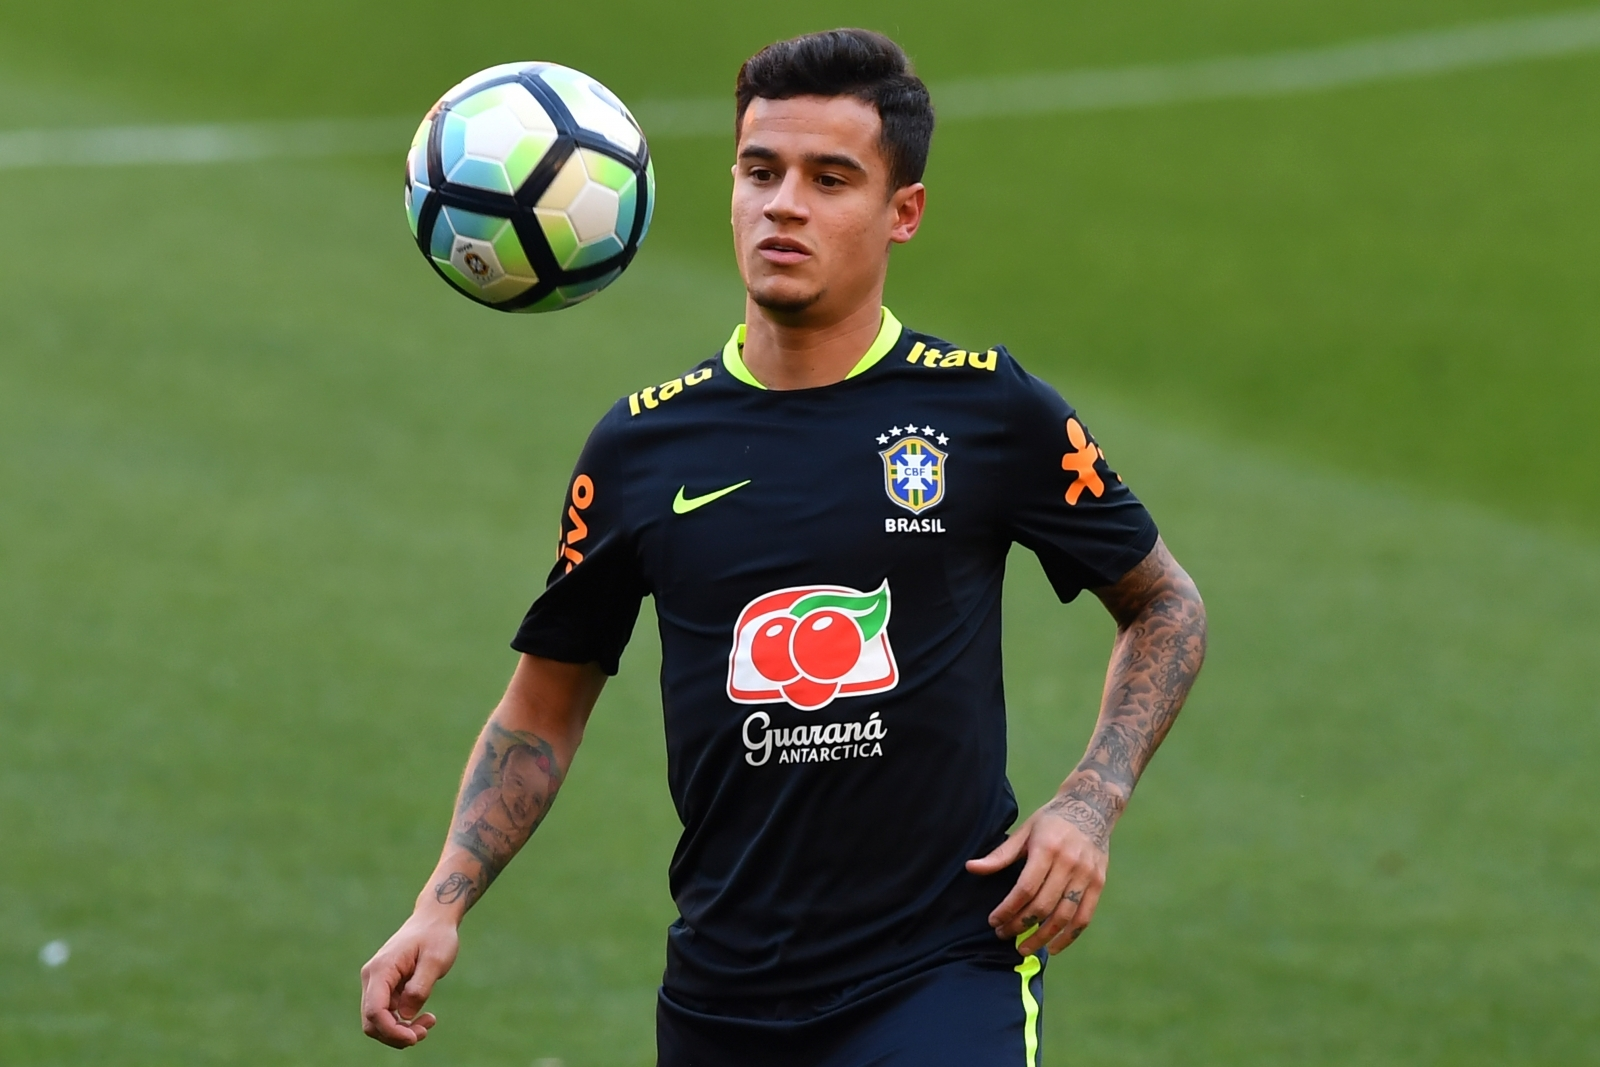 Jurgen Klopp on Philippe Coutinho: We have exactly the situation we wanted